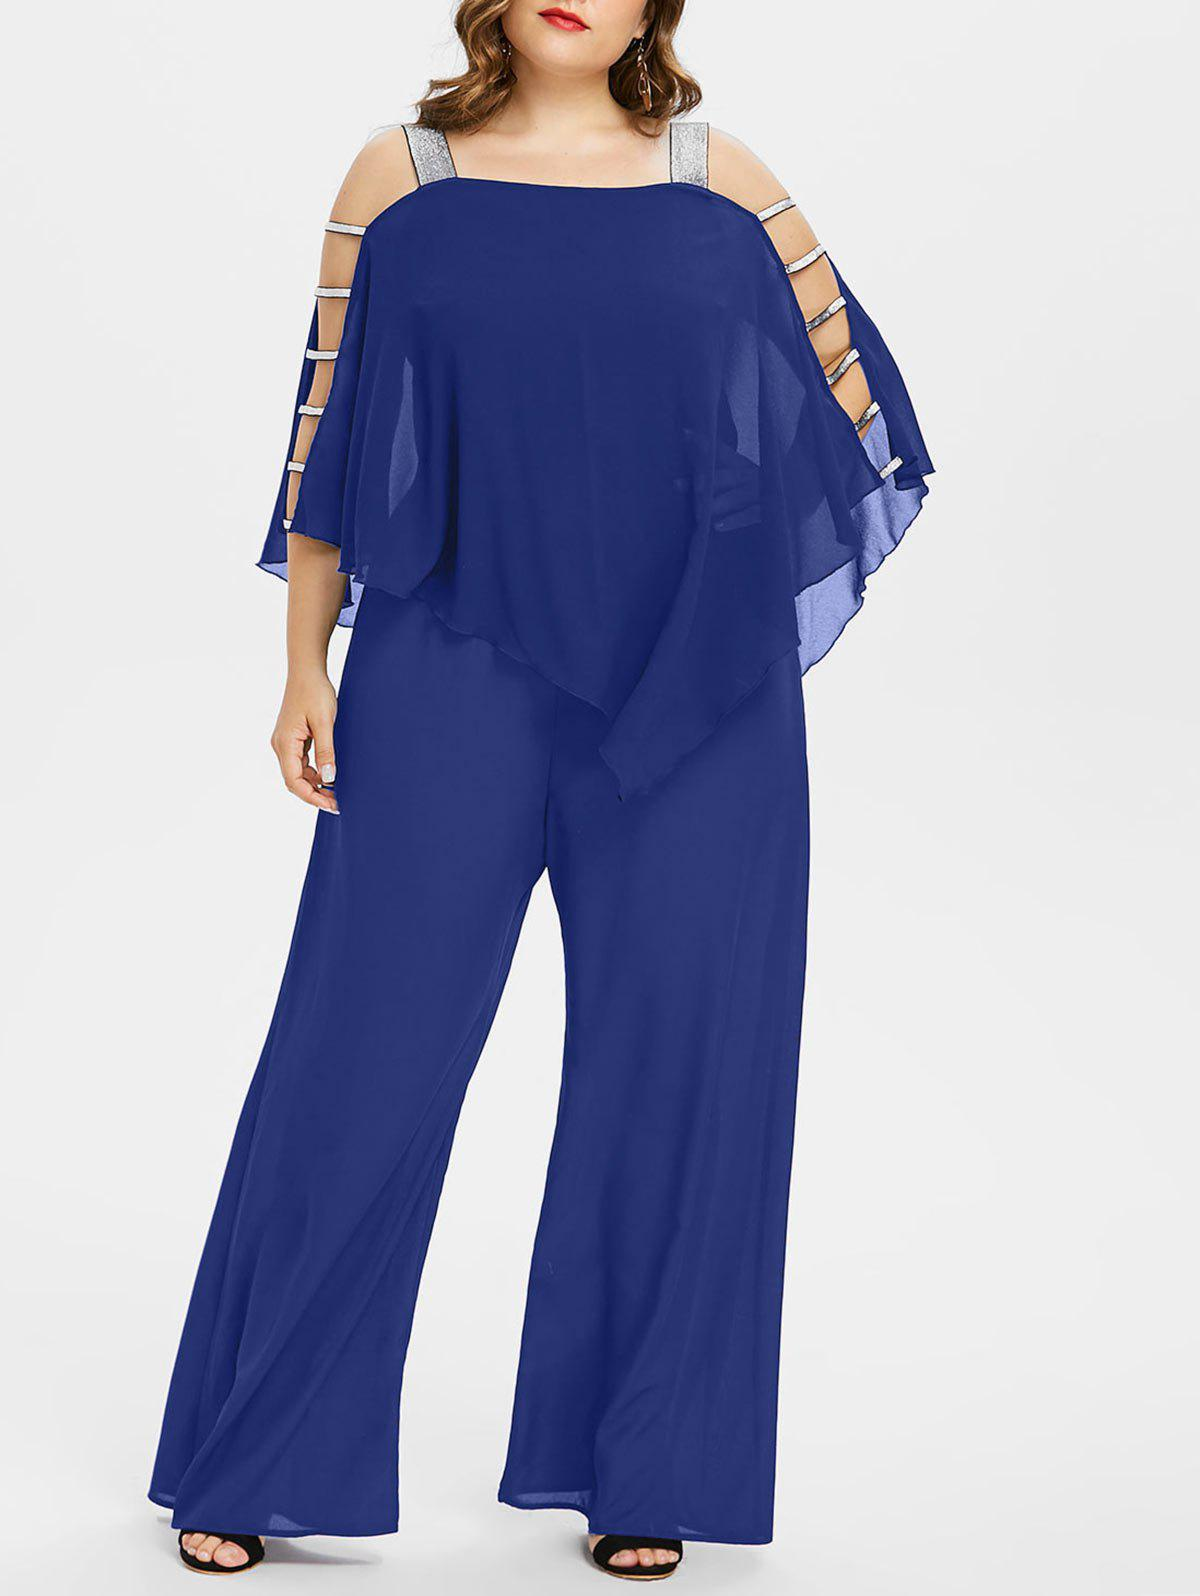 New Ladder Cut Out Plus Size Asymmetrical Jumpsuit